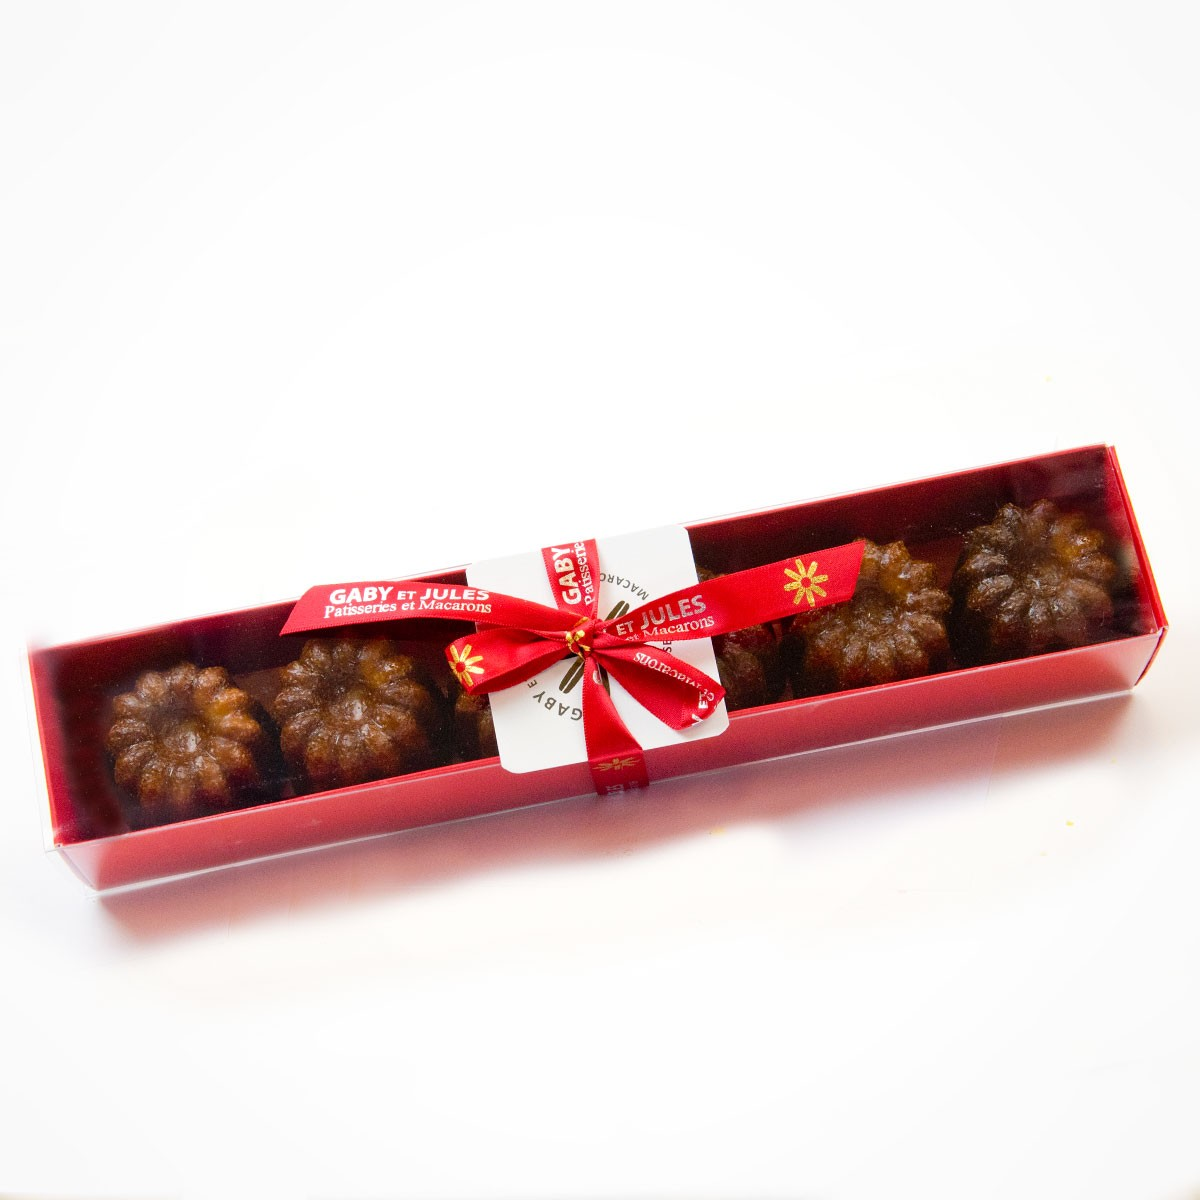 Box of 6 Cannelés